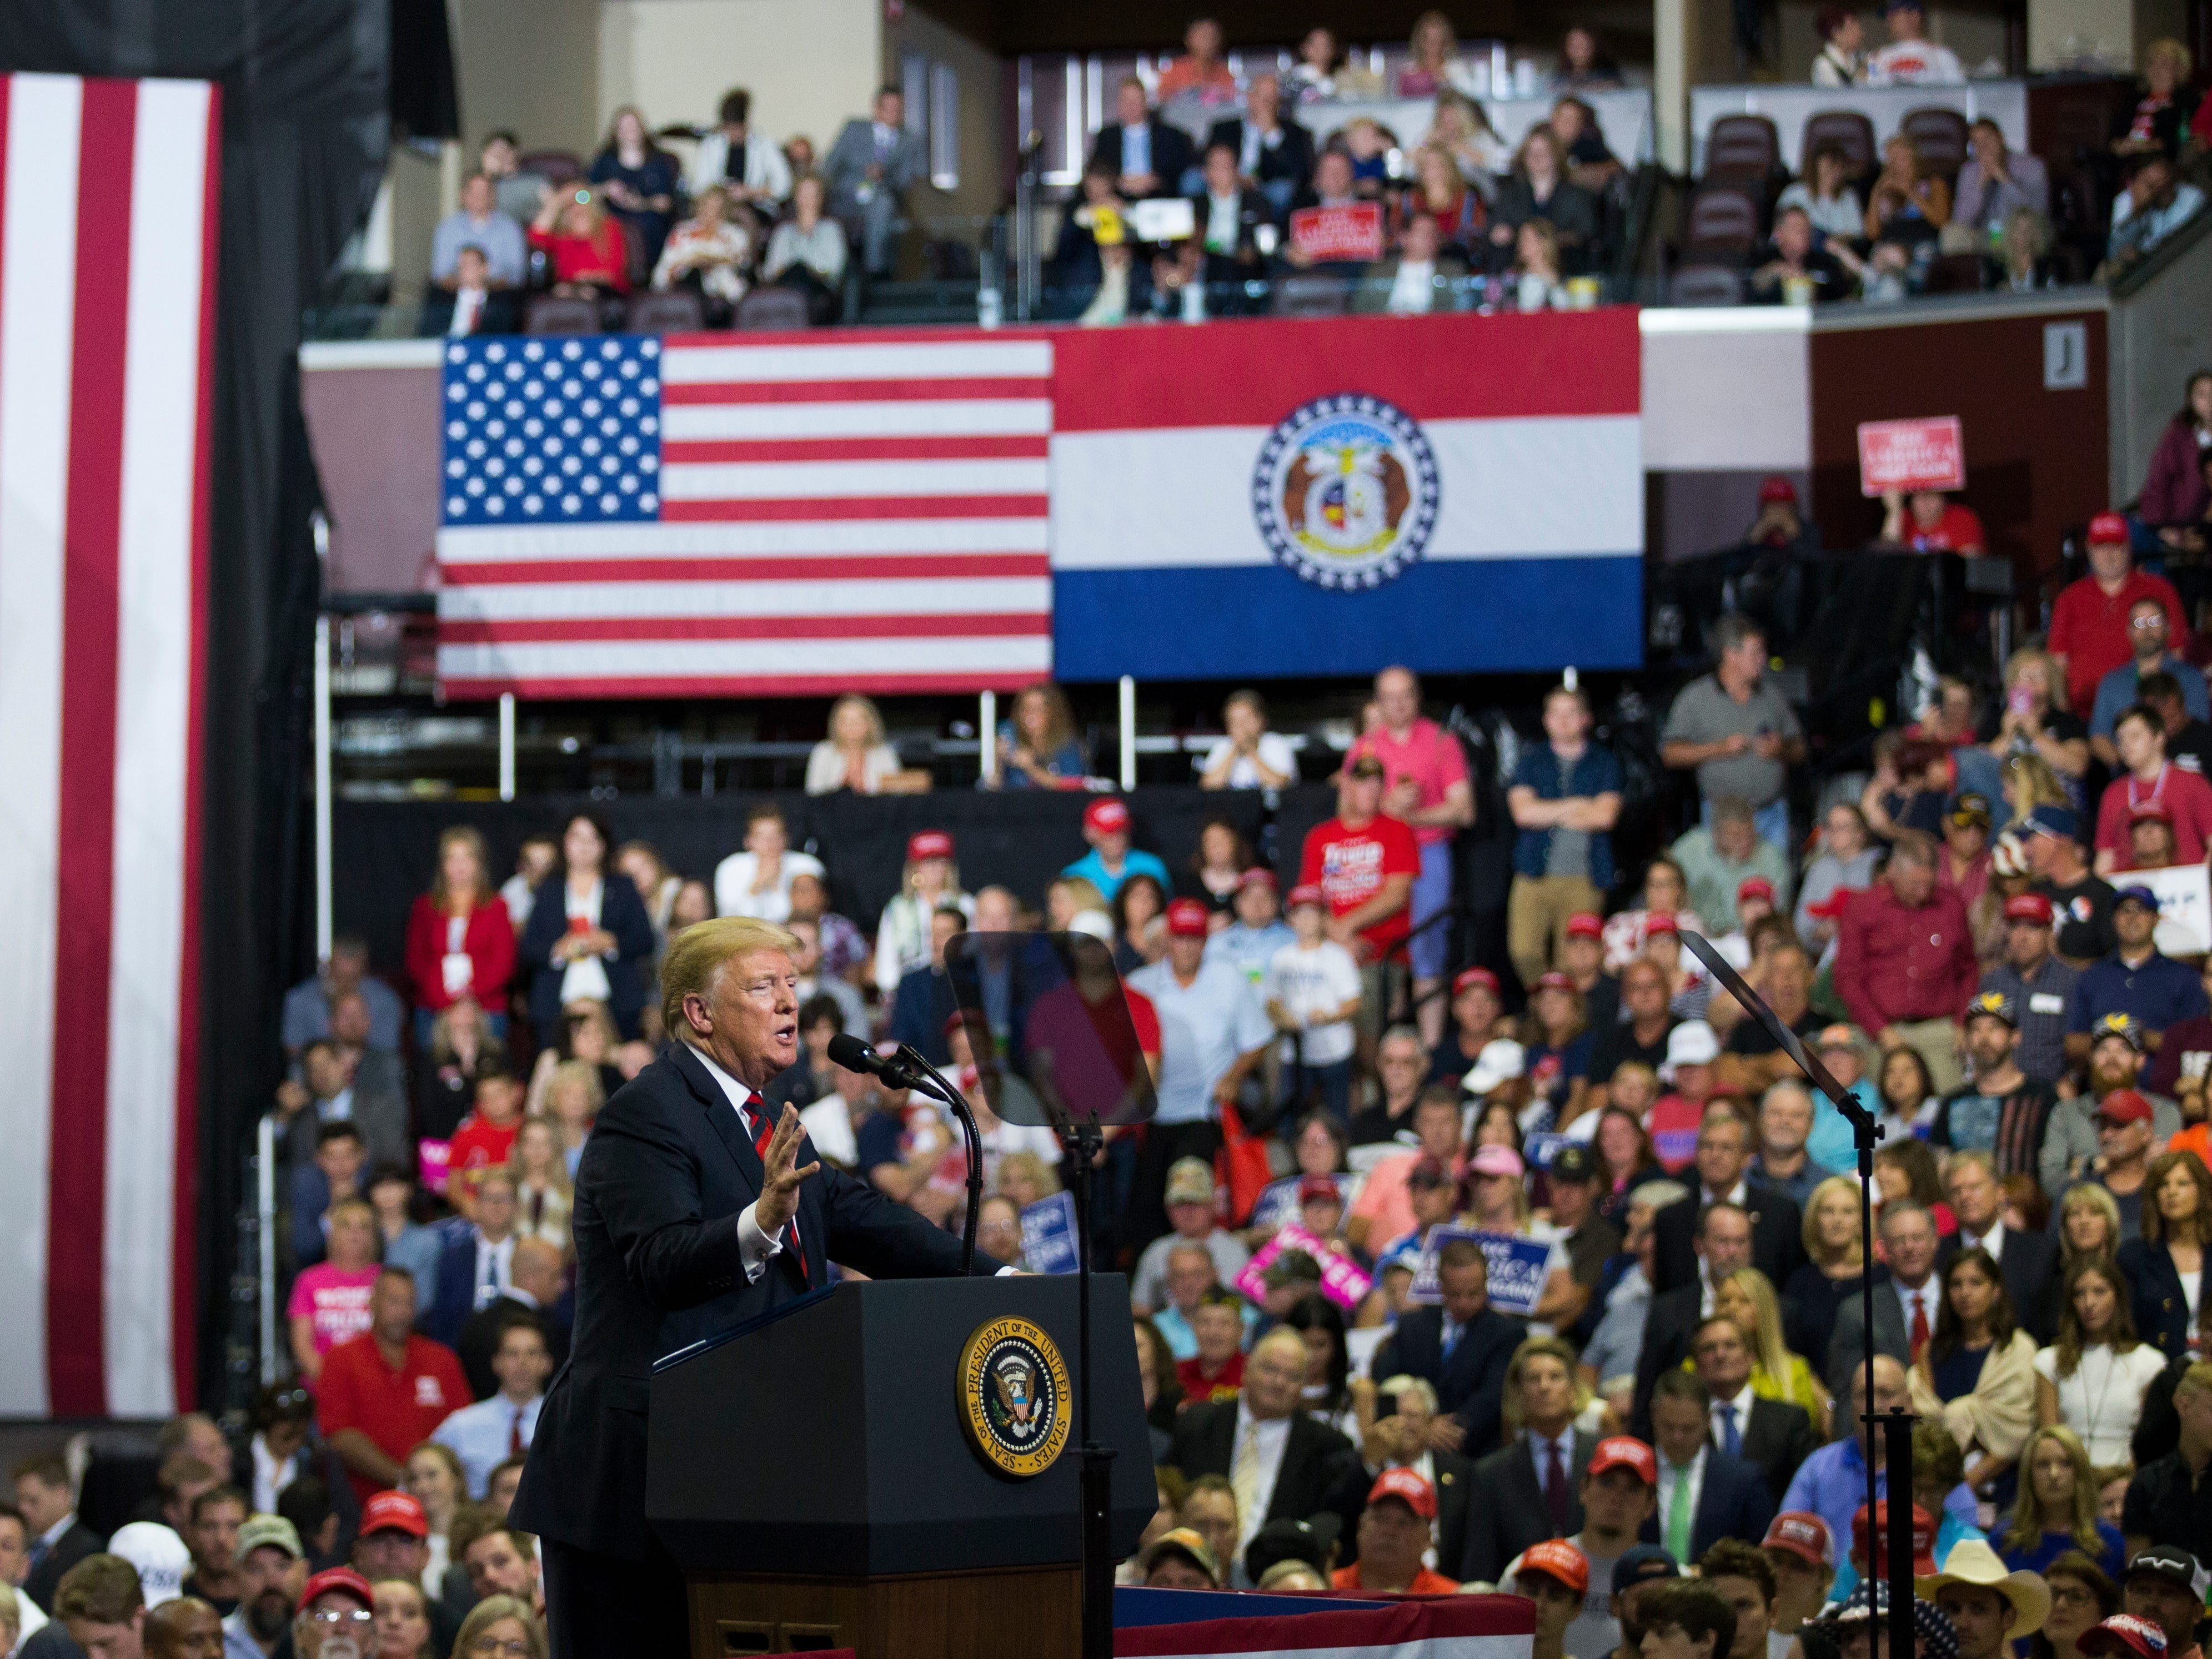 President Donald Trump speaks at a rally at JQH Arena in Springfield on Friday, Sept. 21, 2018